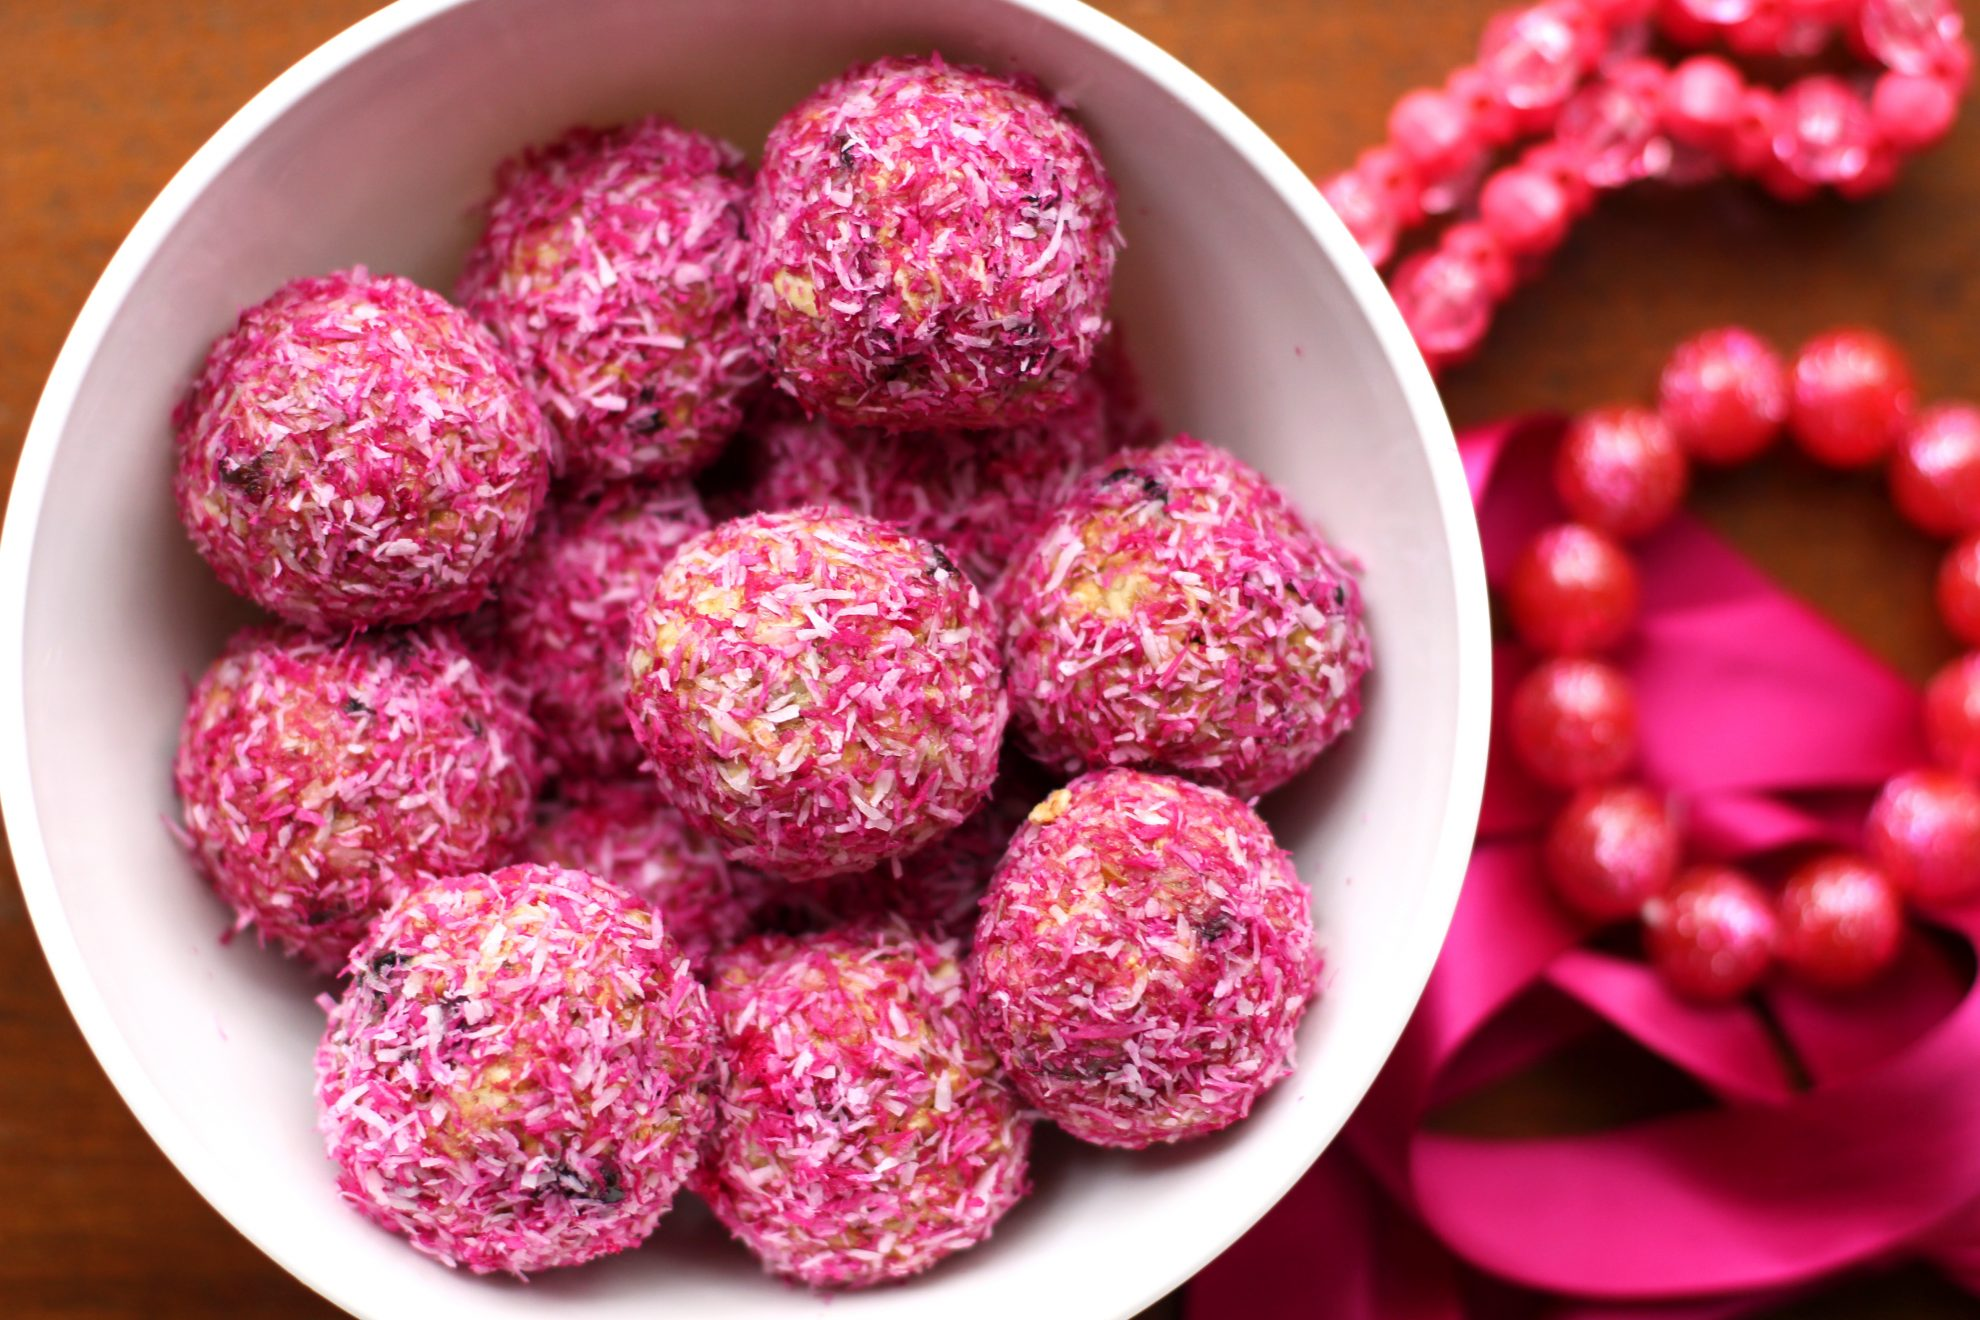 Beautiful pink protein balls photo shows how to photograph food for blog